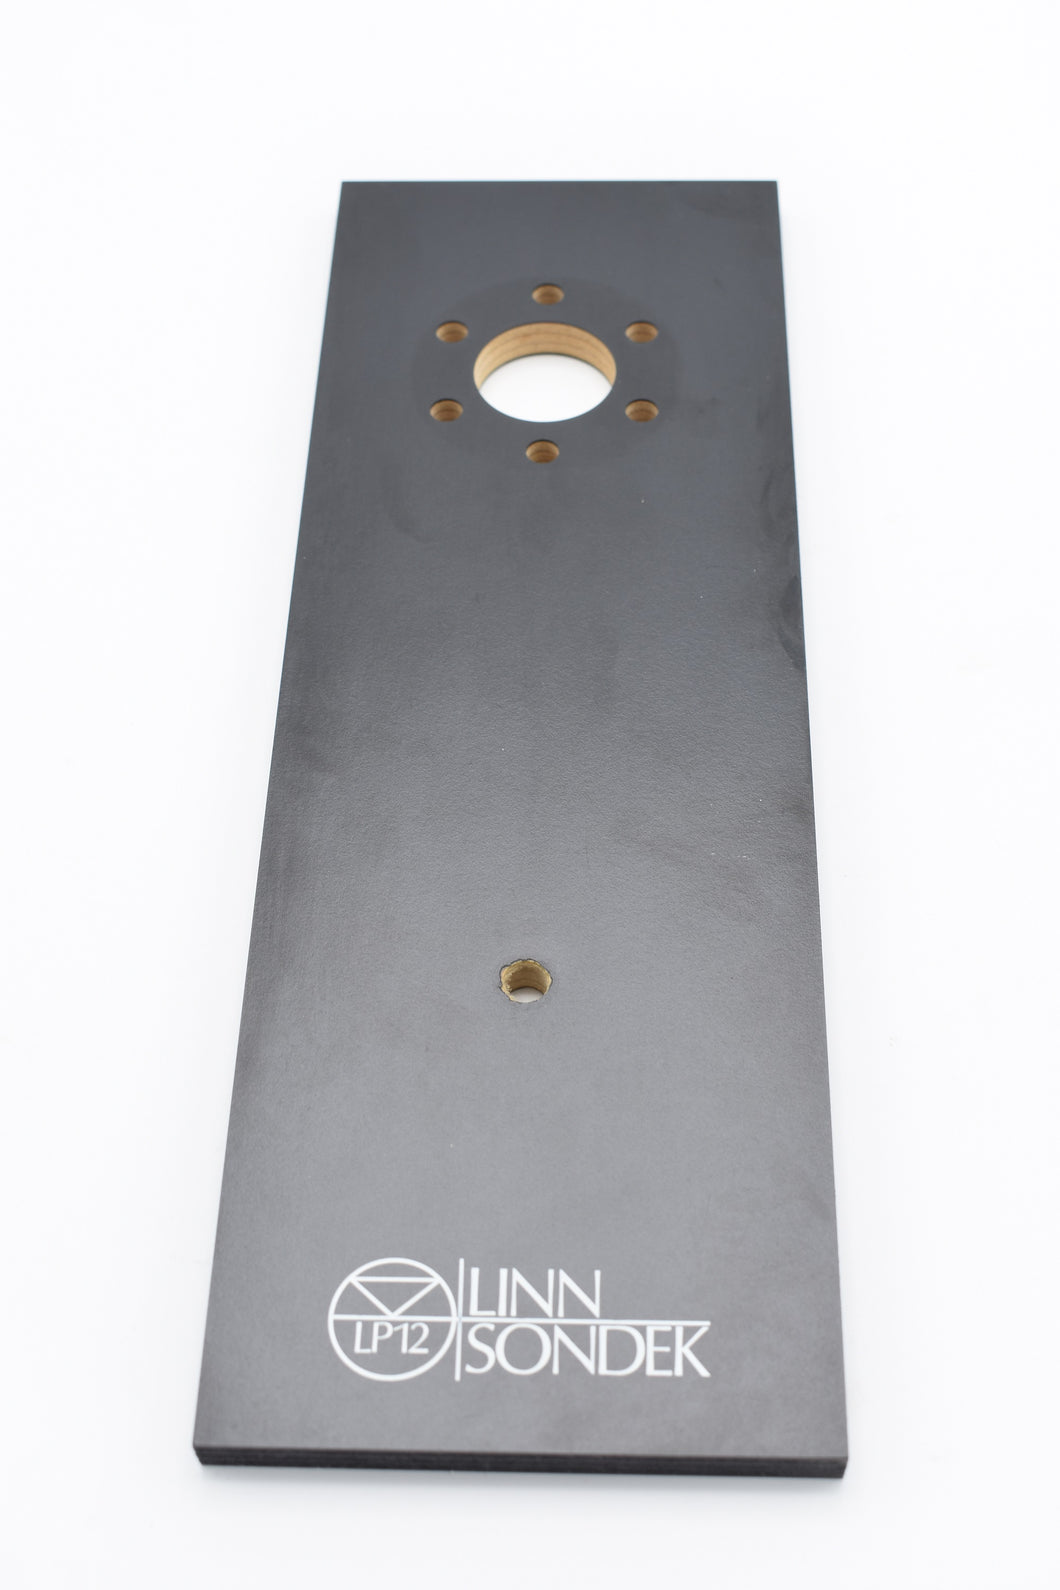 Linn LP12 Armboard for Linn tonearms (Preowned, Ref 000086)